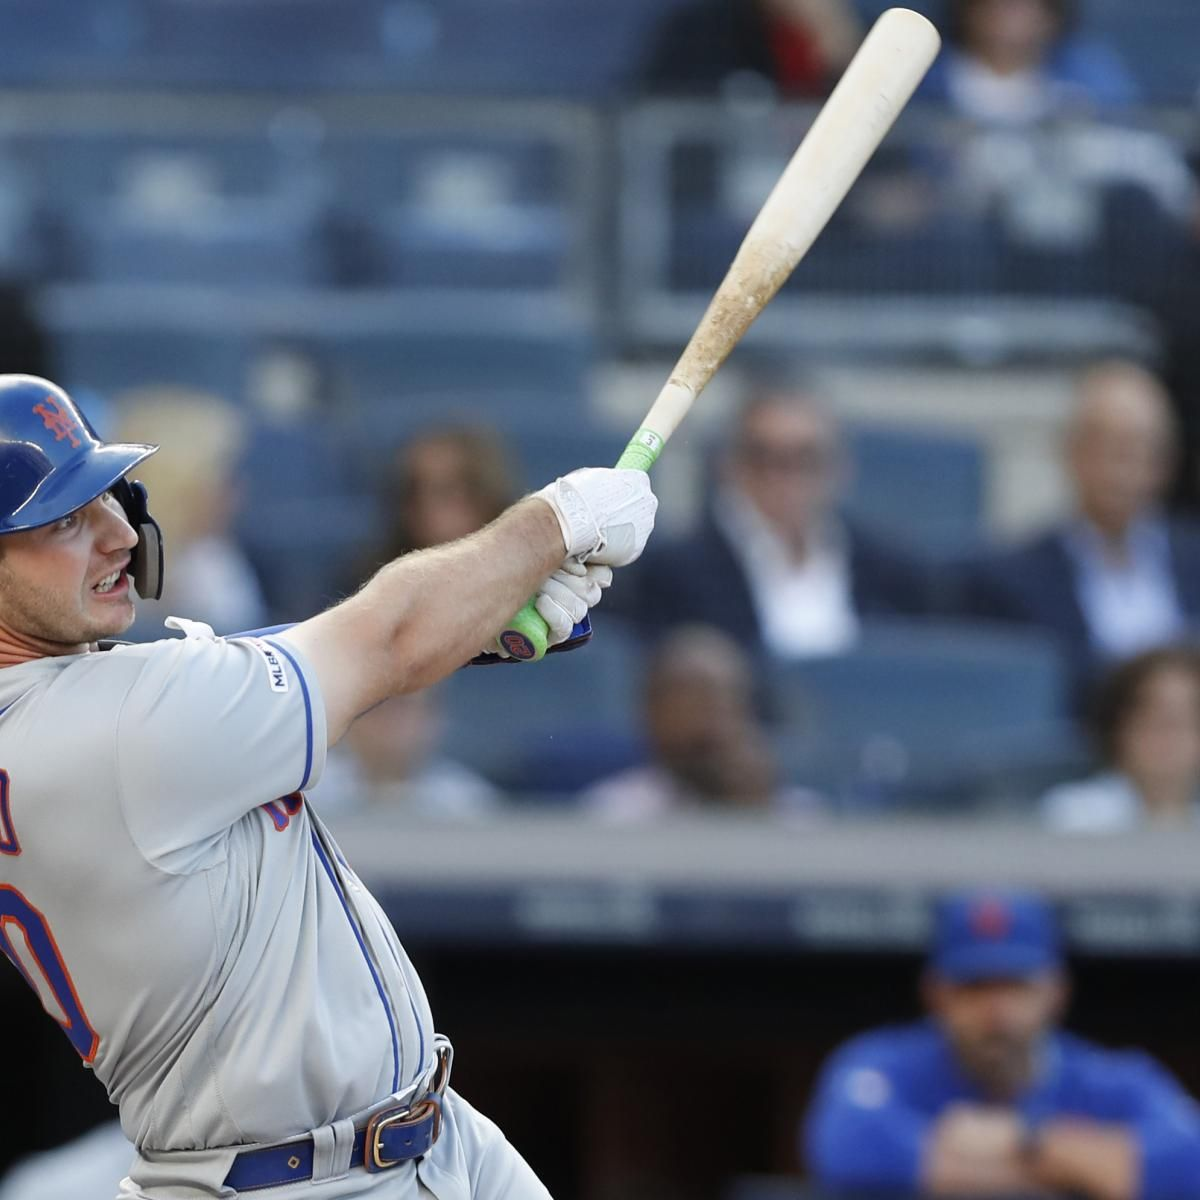 Mets Pete Alonso To Participate In 2019 Mlb Home Run Derby Has 27 Hrs Mets Ny Mets Mlb